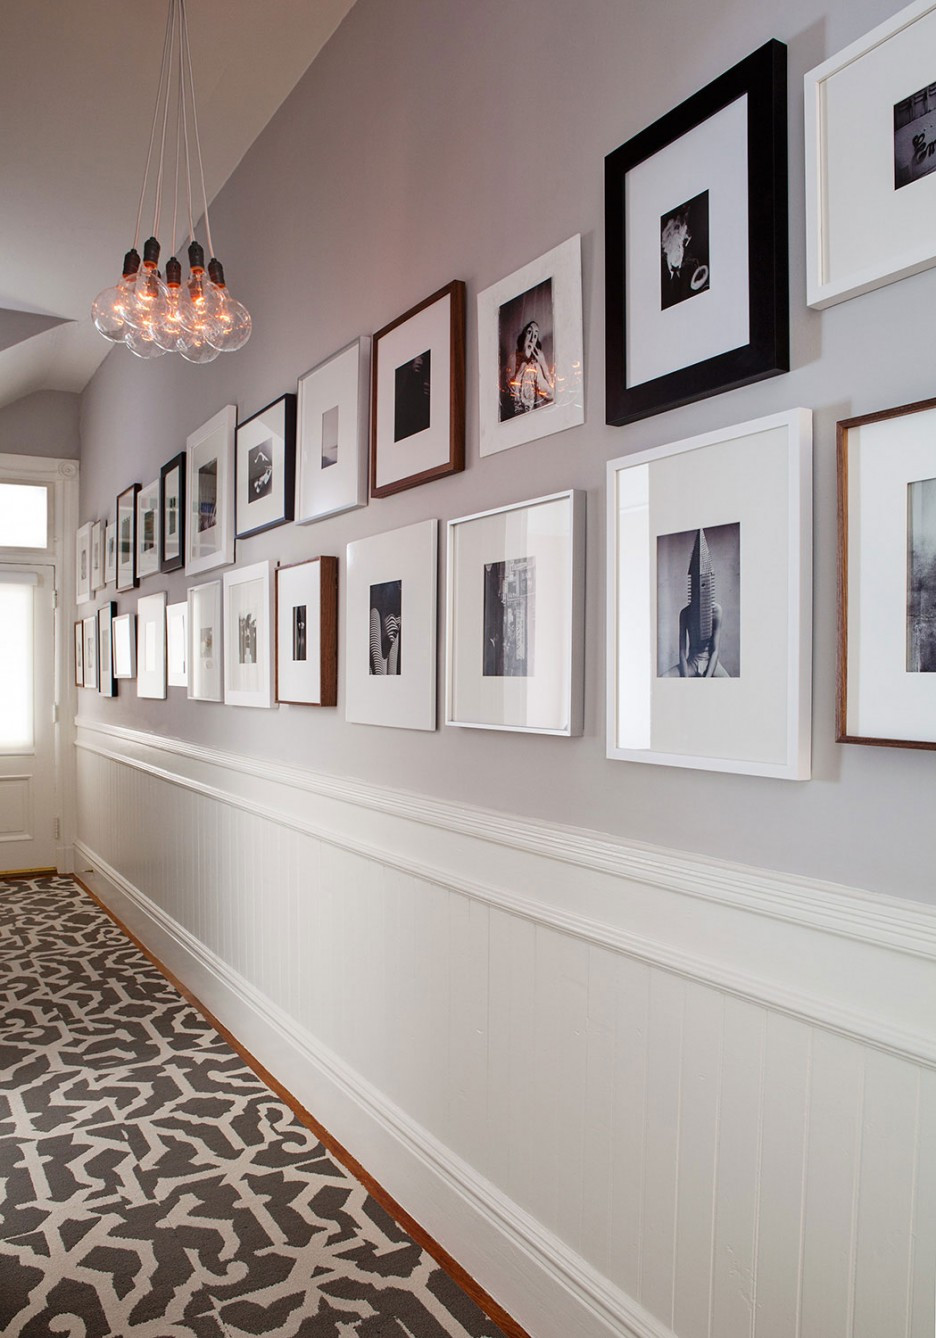 Adorable-Wall-Art-Studded-along-Capp-Street-Home-Hallway-Wall-Displaying-Framed-